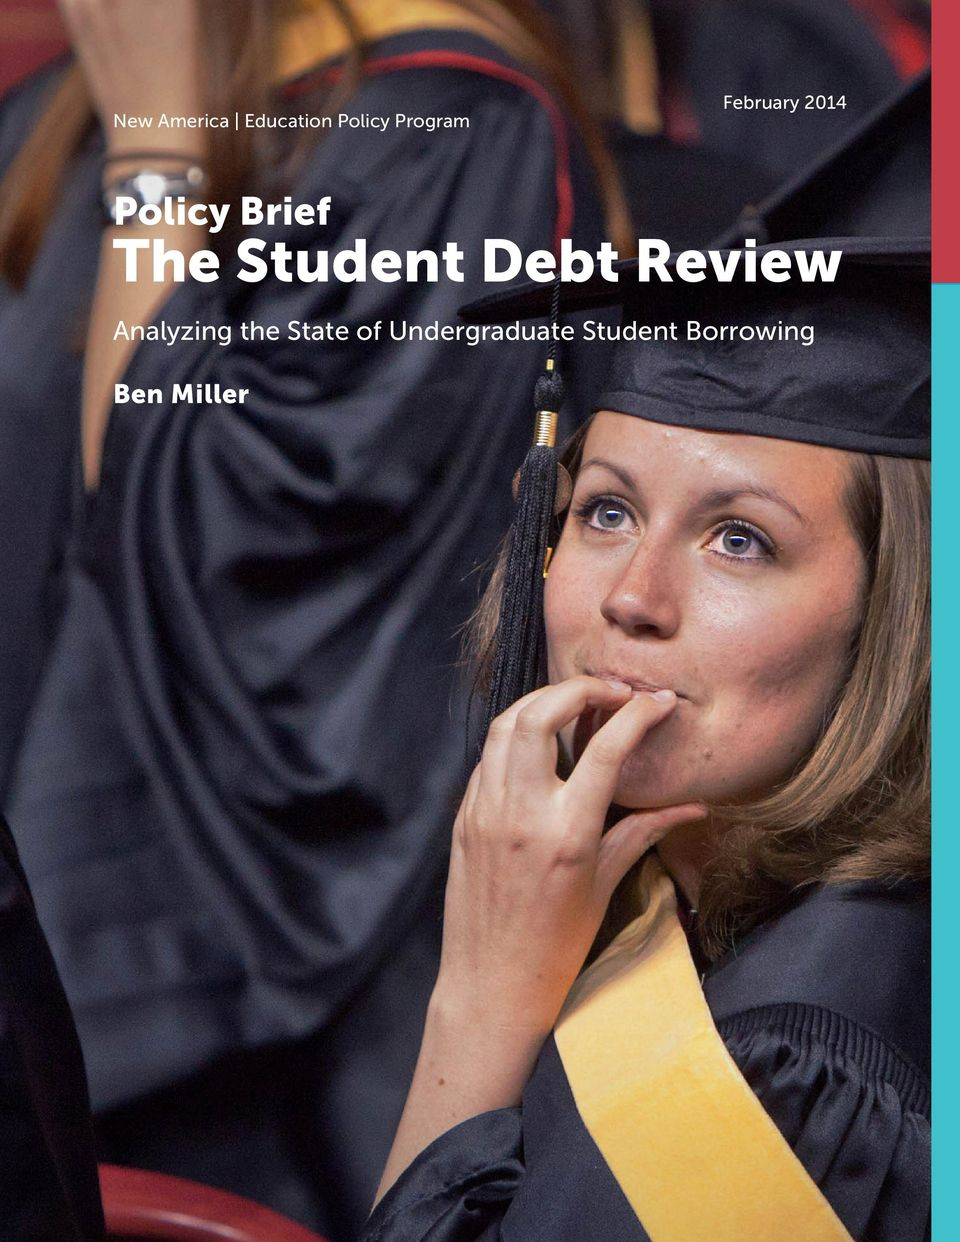 Debt Review Analyzing the State of